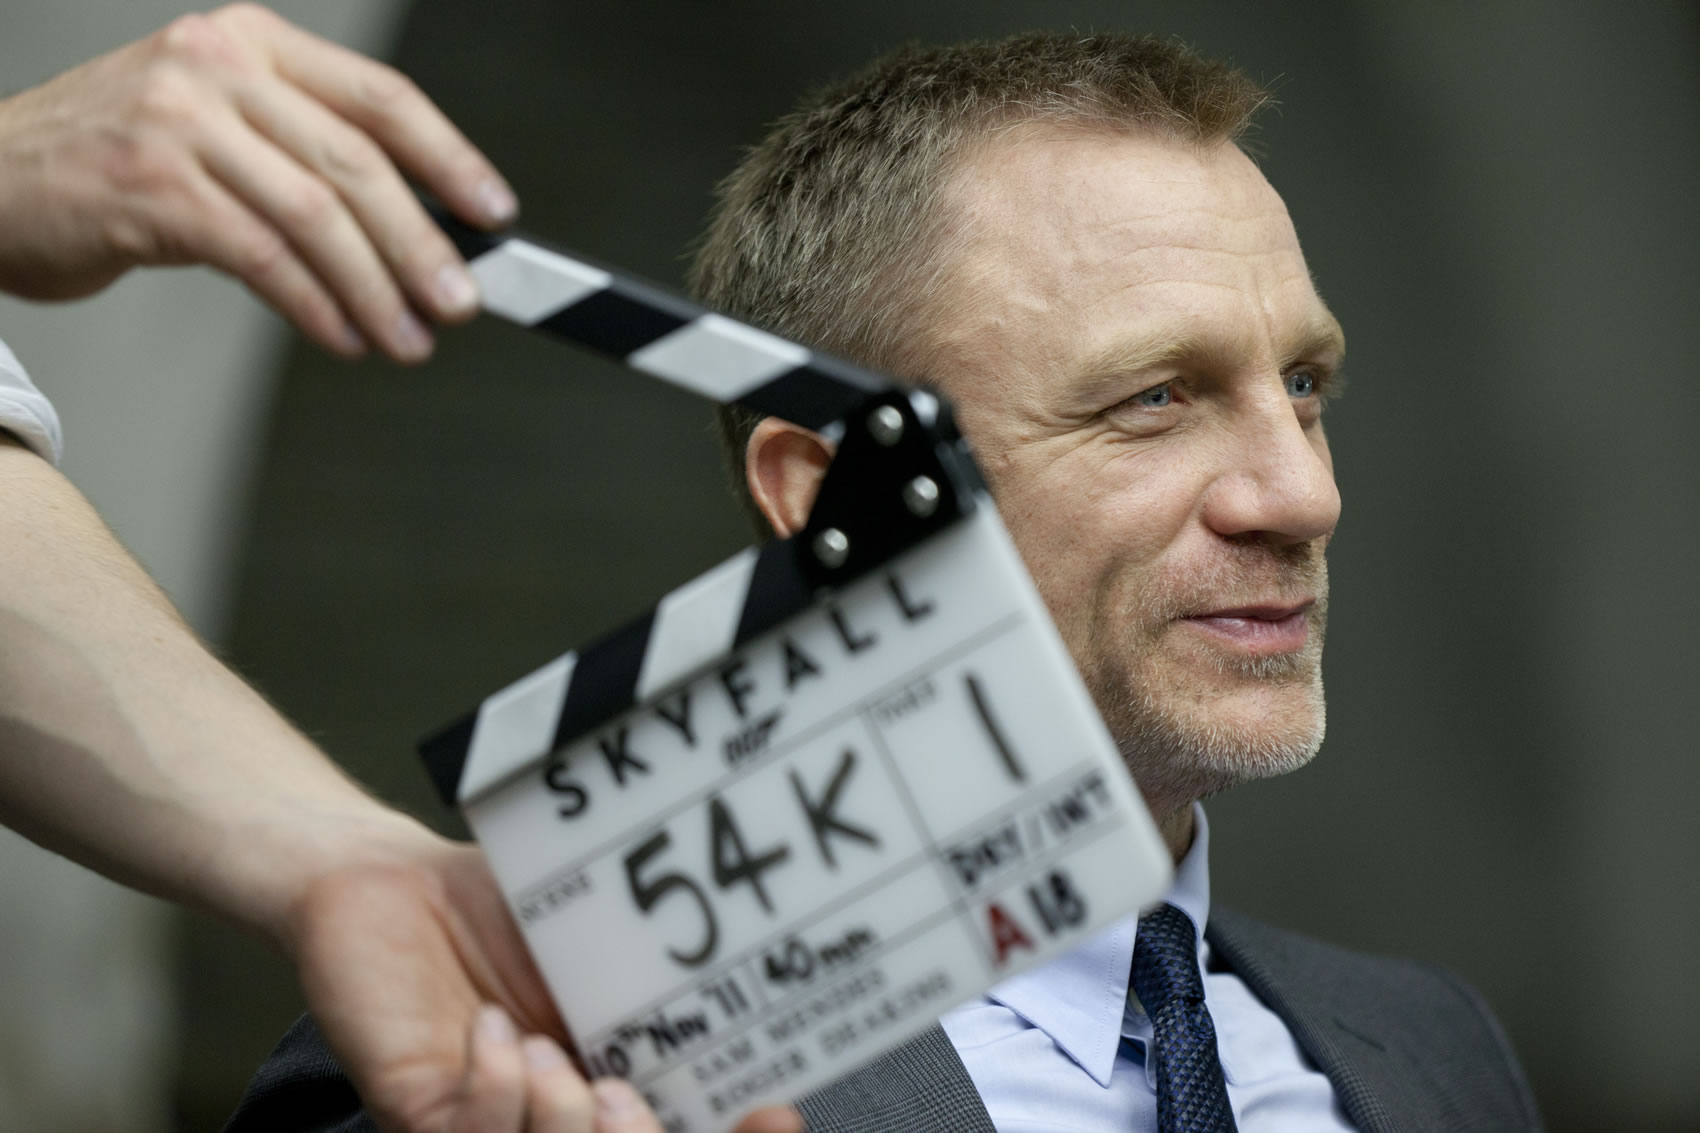 SKYFALL © 2012 Danjaq, LLC, United Artists Corporation, Columbia Pictures Industries, Inc. 007 Gun Logo and related James Bond Trademarks © 1962-2012 Danjaq, LLC and United Artists Corporation. SKYFALL, 007 and related James Bond Trademarks are trademarks of Danjaq, LLC. All Rights Reserved.